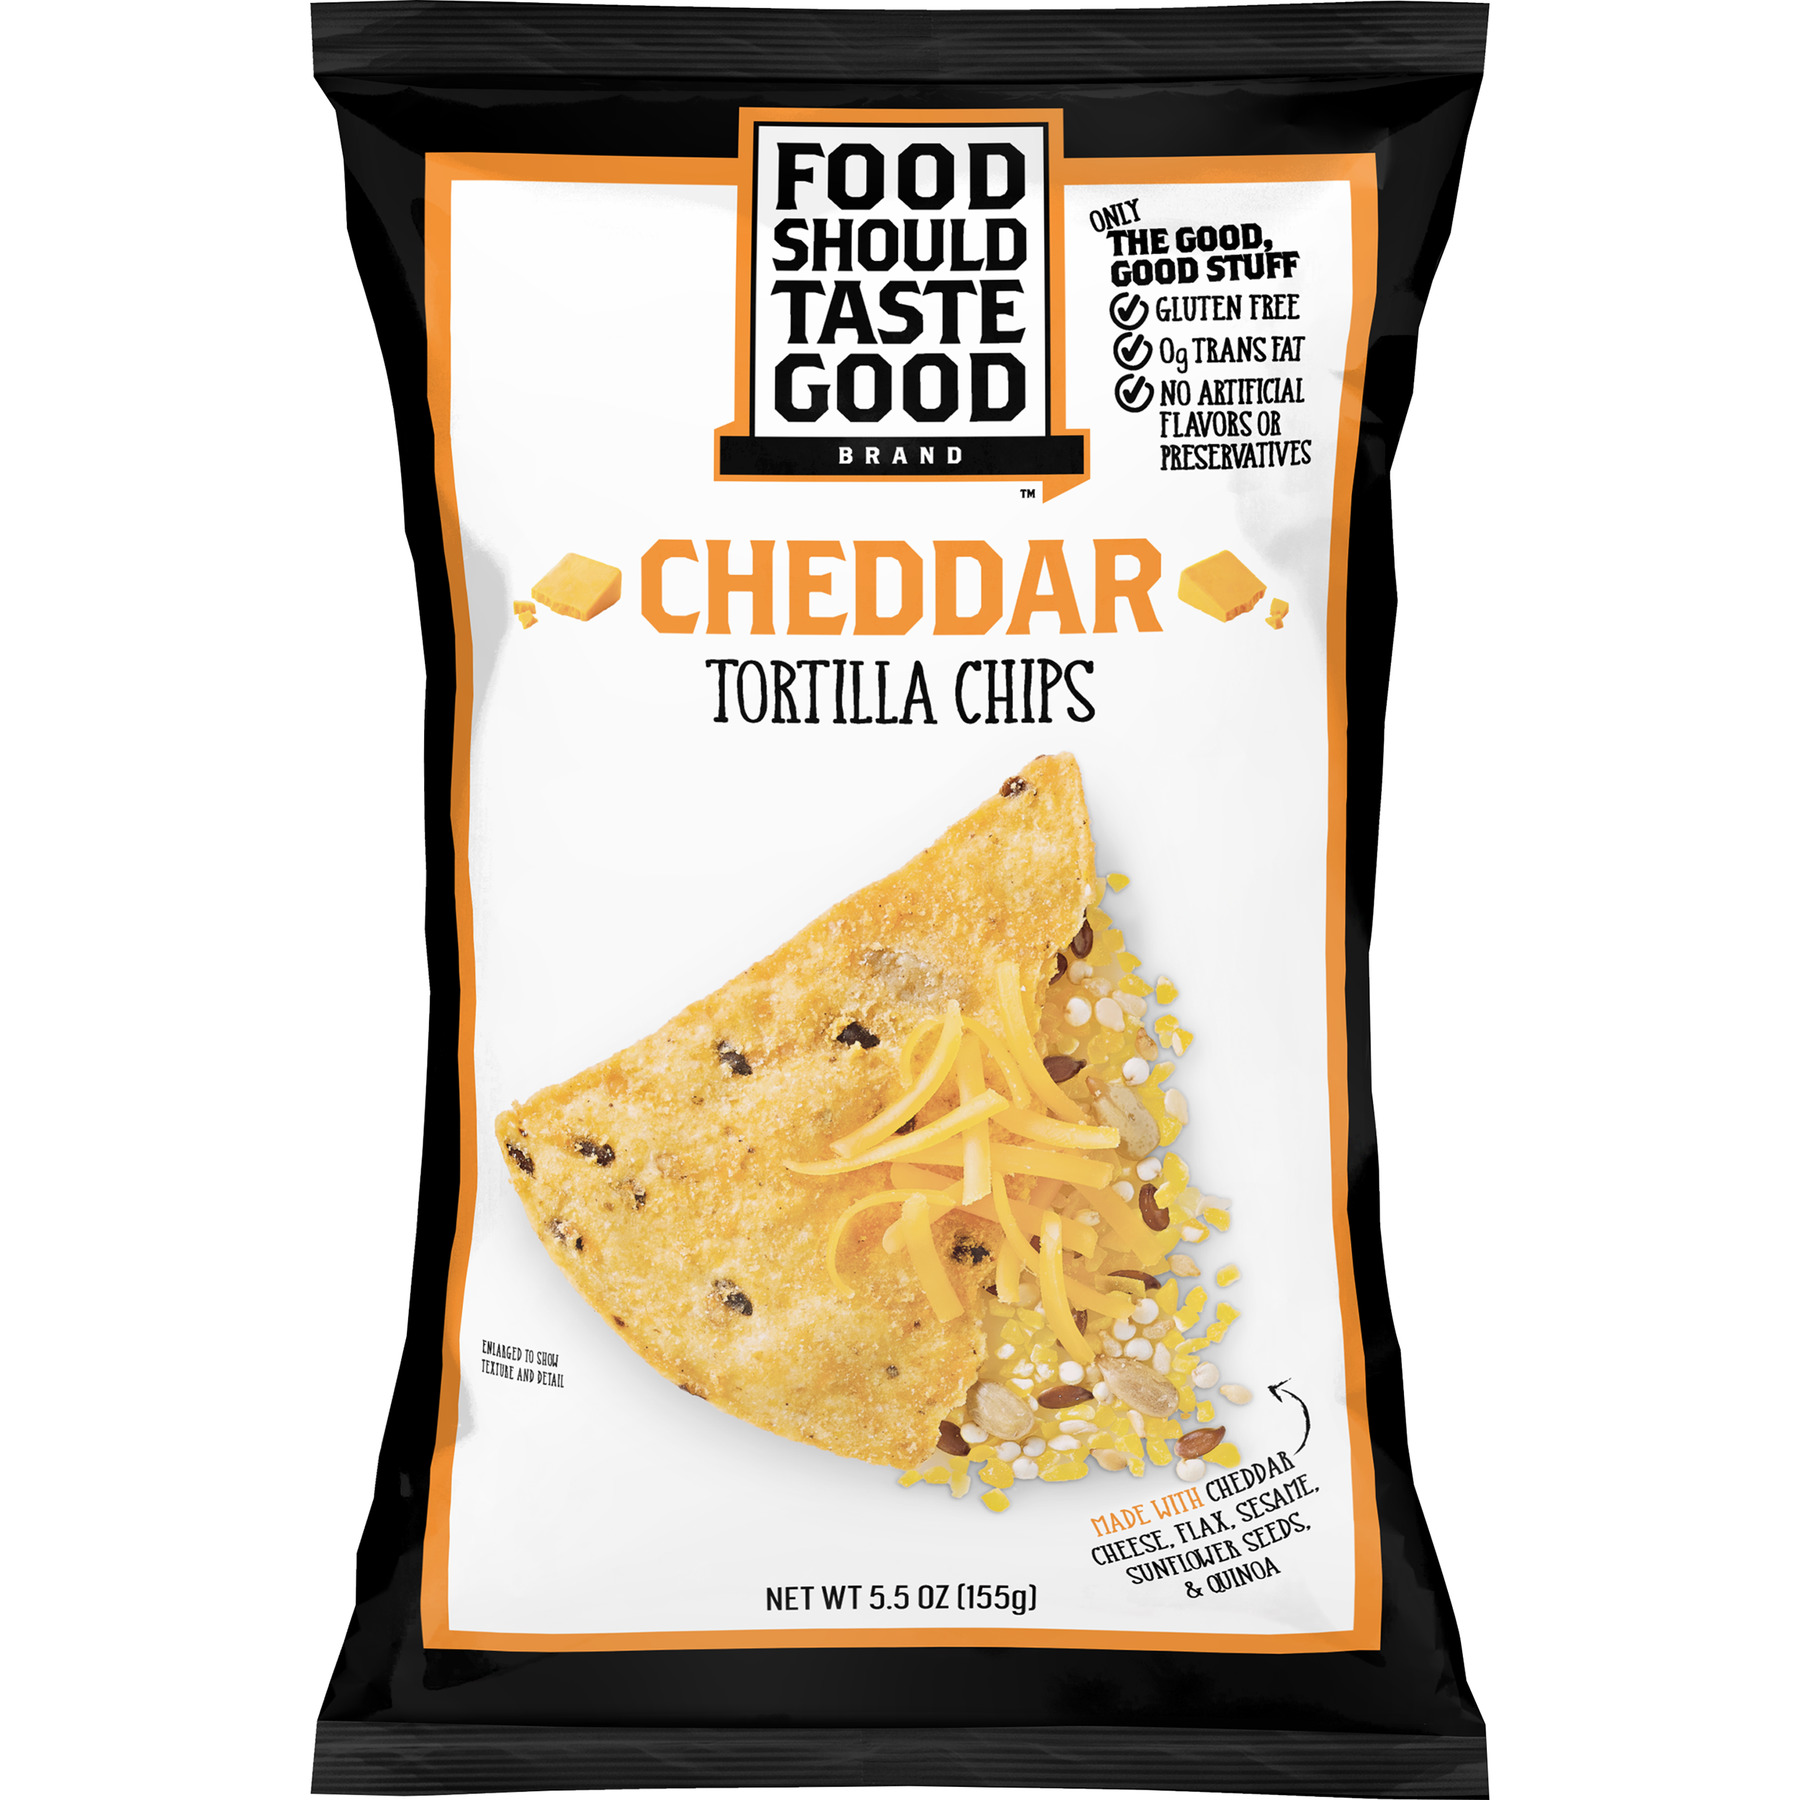 Food Should Taste Good Cheddar Tortilla Chips, 5.5 oz